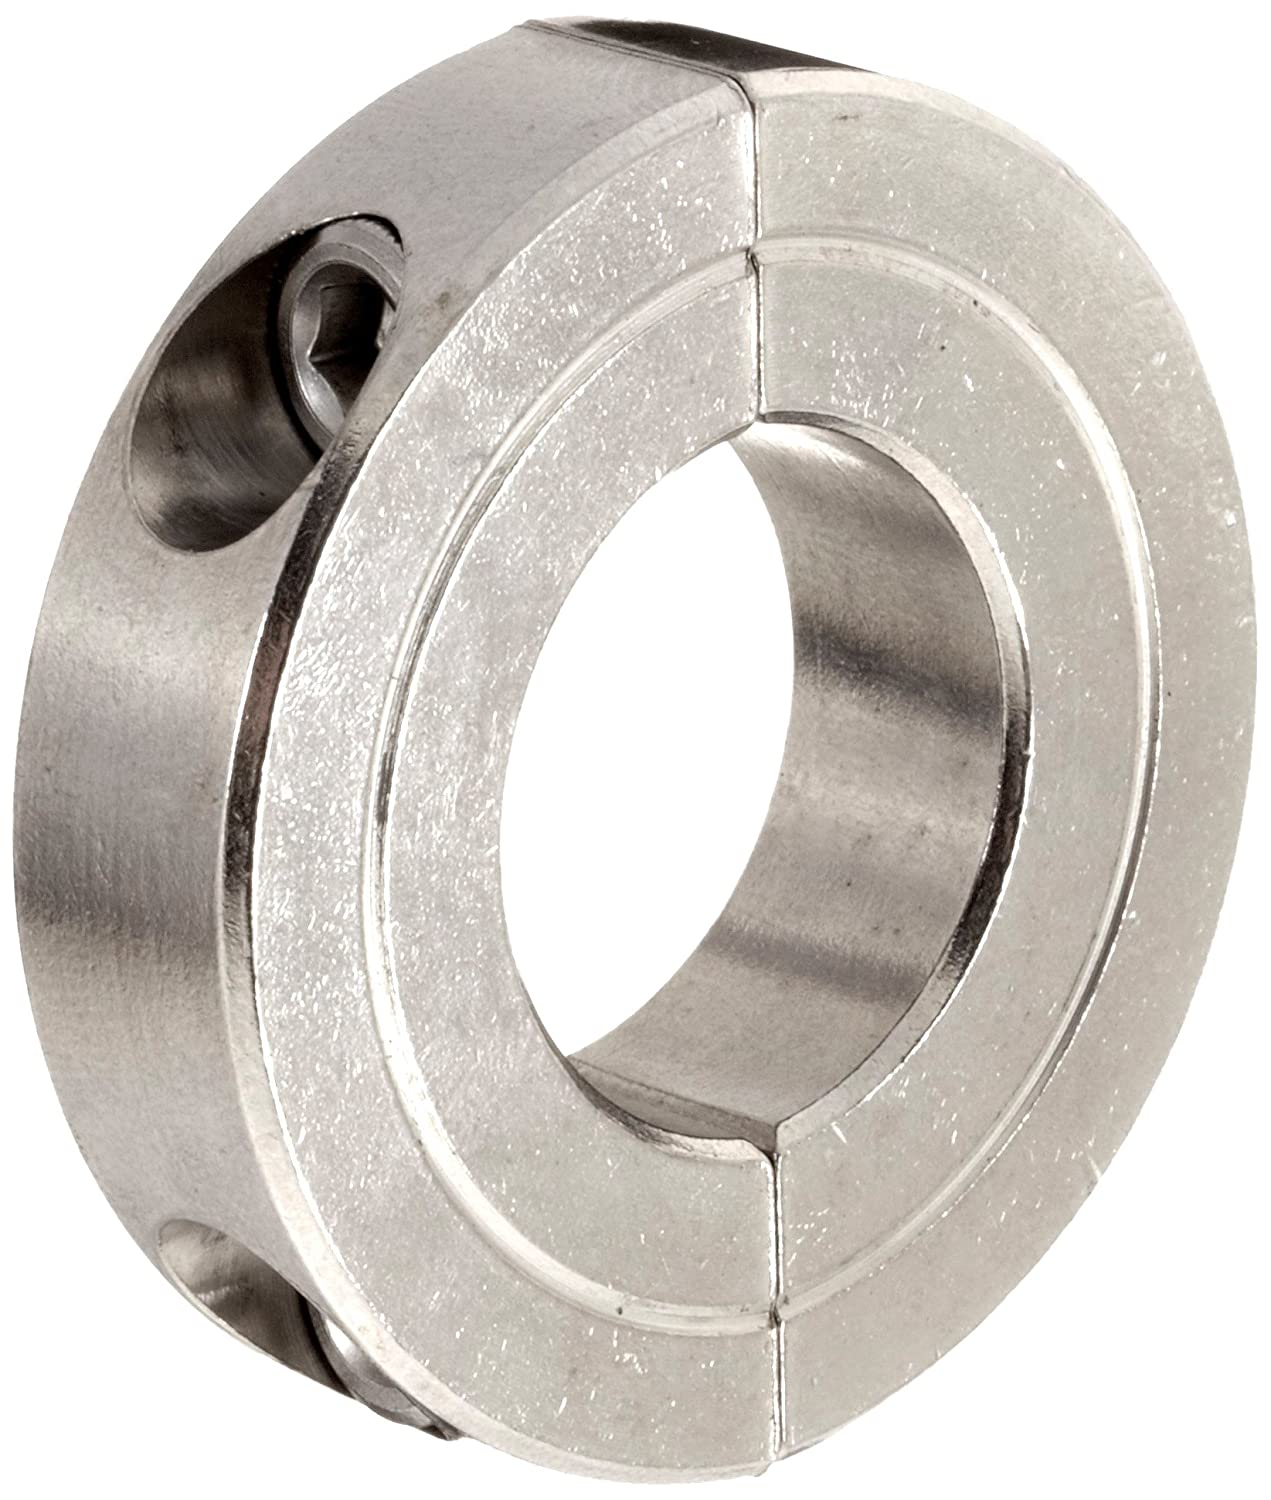 Climax Metal H2C-150-S Shaft Collar With 1//4-28 x 3//4 Set Screw 2-1//2 OD 1-1//2 Bore Two Piece Stainless Steel 1//2 Width